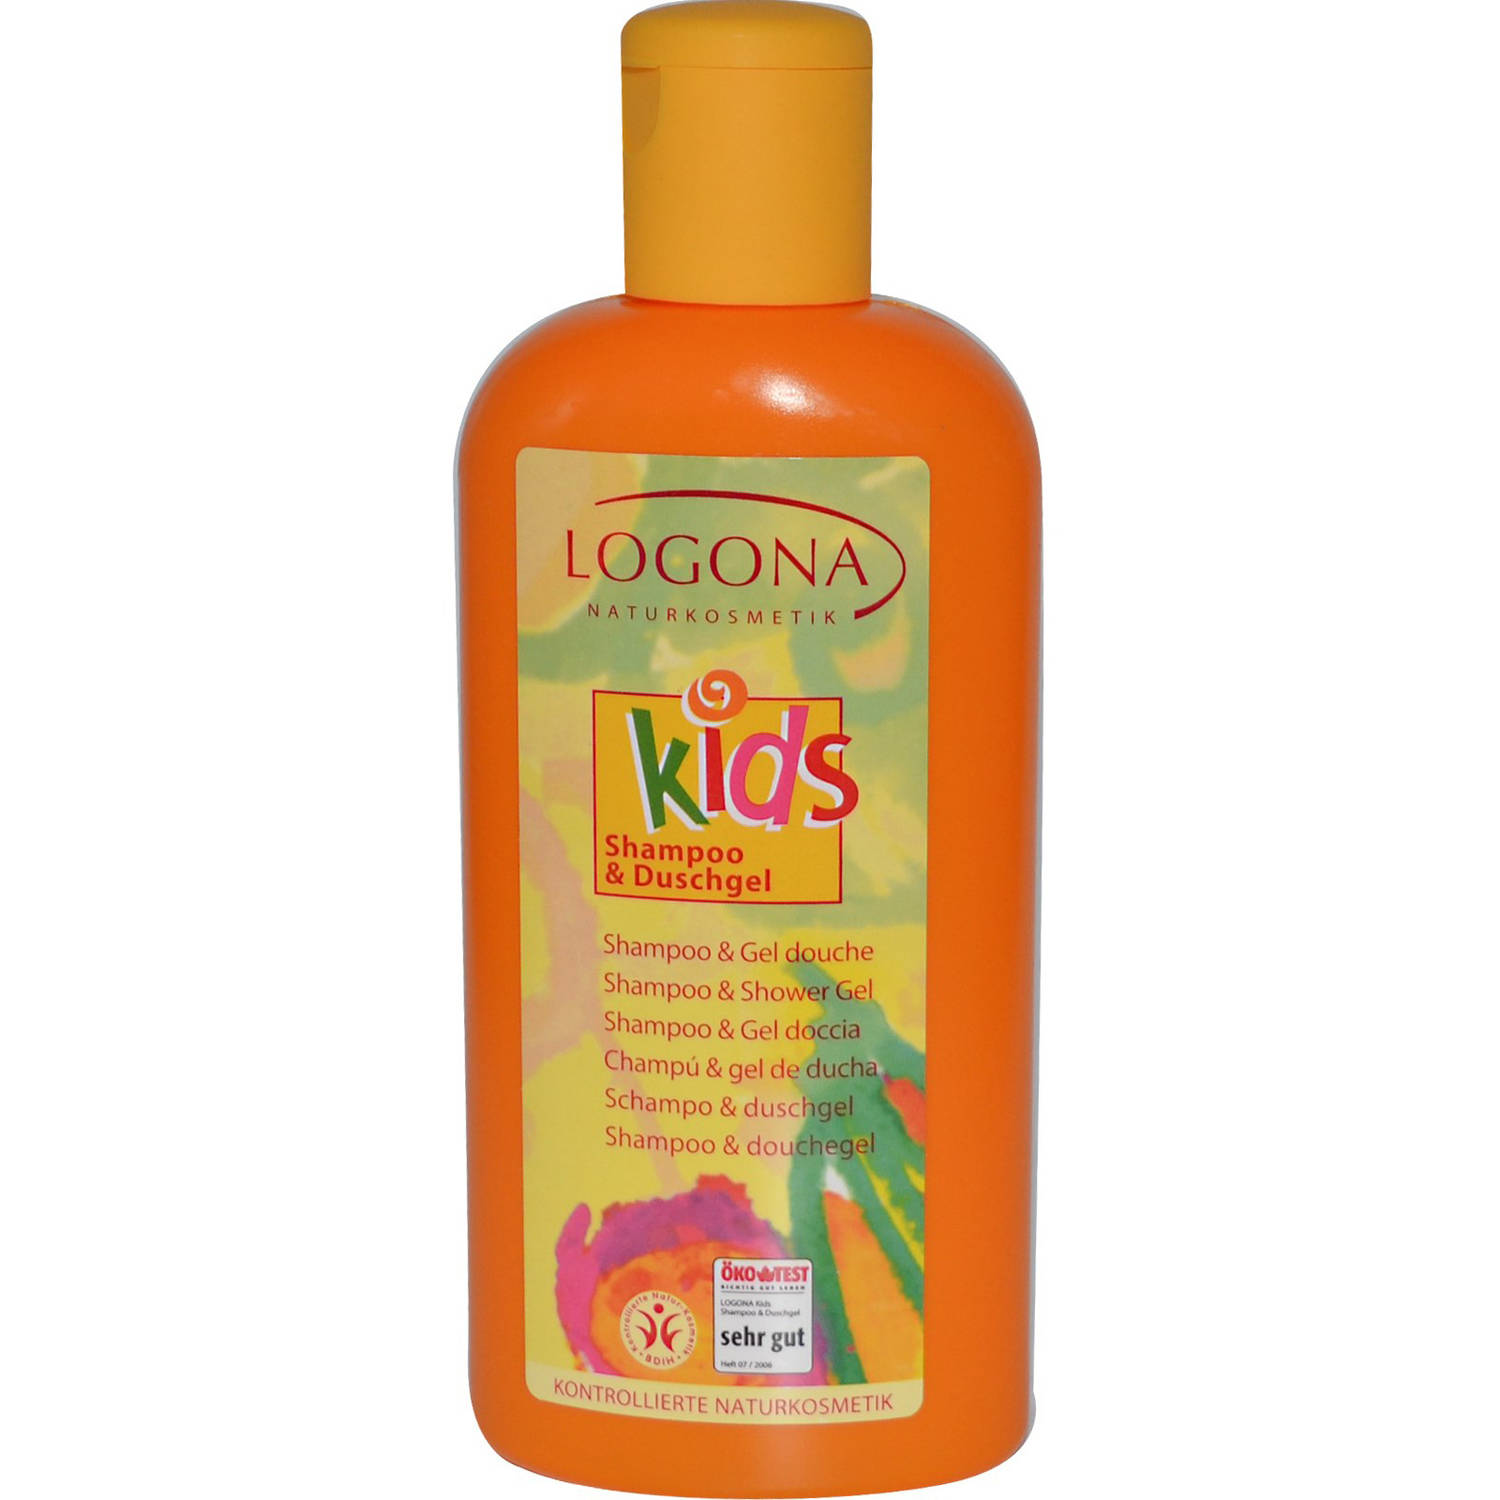 Logona Natural Body Care Baby & Kids Products, Kids Shampoo & Shower Gel, 6.8 oz